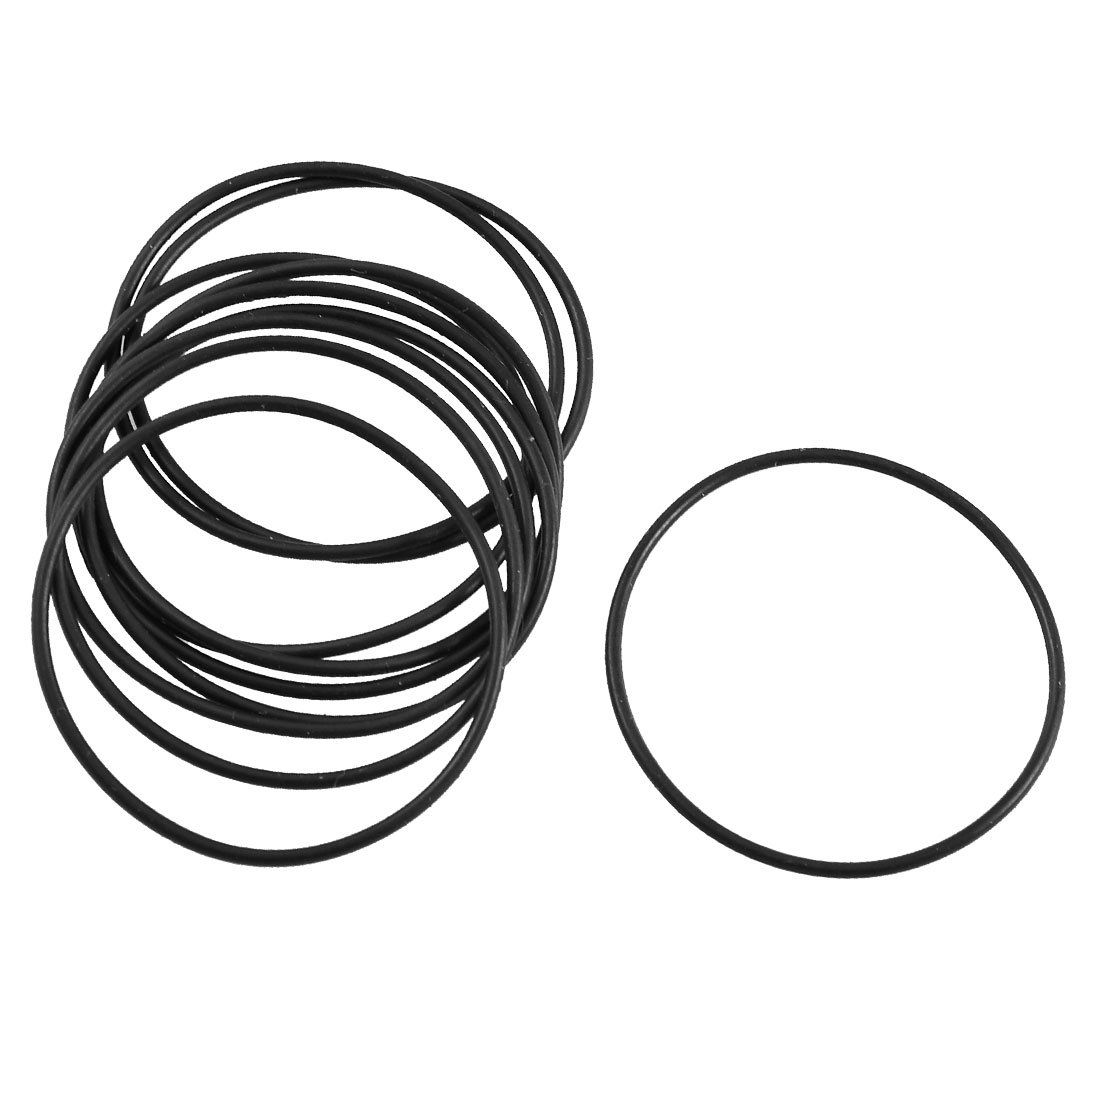 Pack of 10 Metric Buna-N Sealing Gasket uxcell Nitrile Rubber O-Rings 42mm OD 39mm ID 1.5mm Width